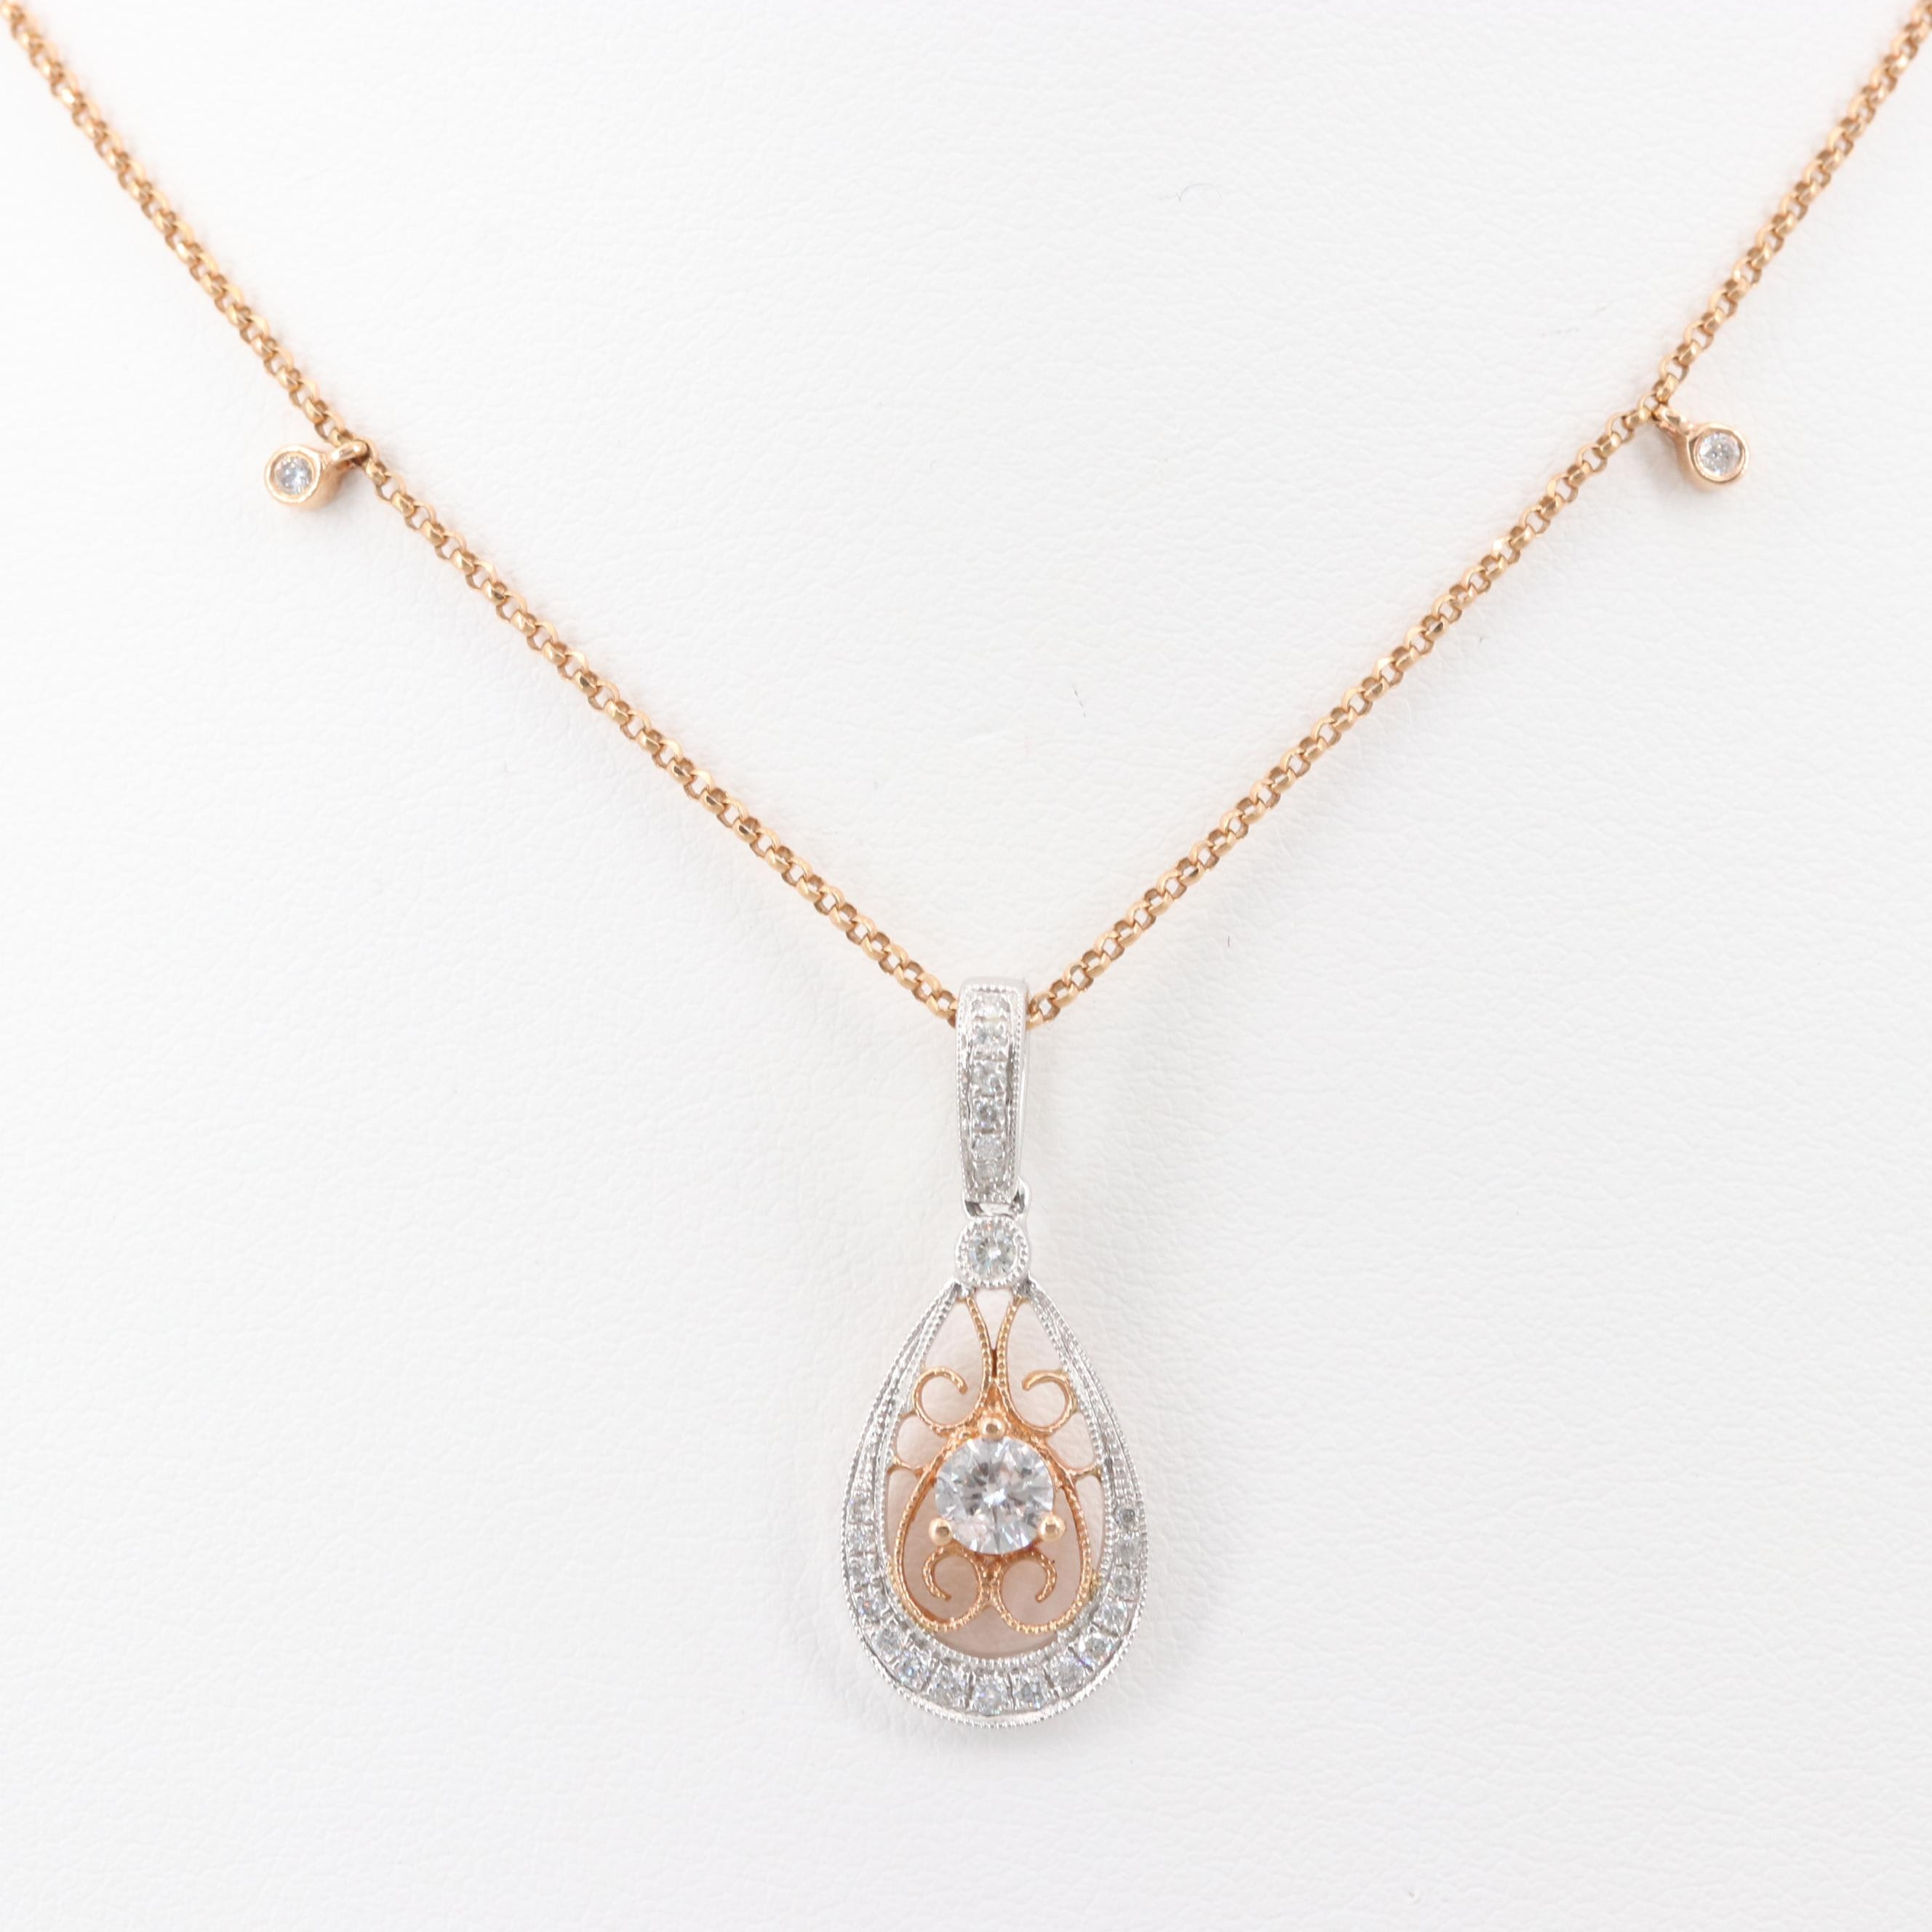 18K Rose and White Gold Diamond Pendant Necklace